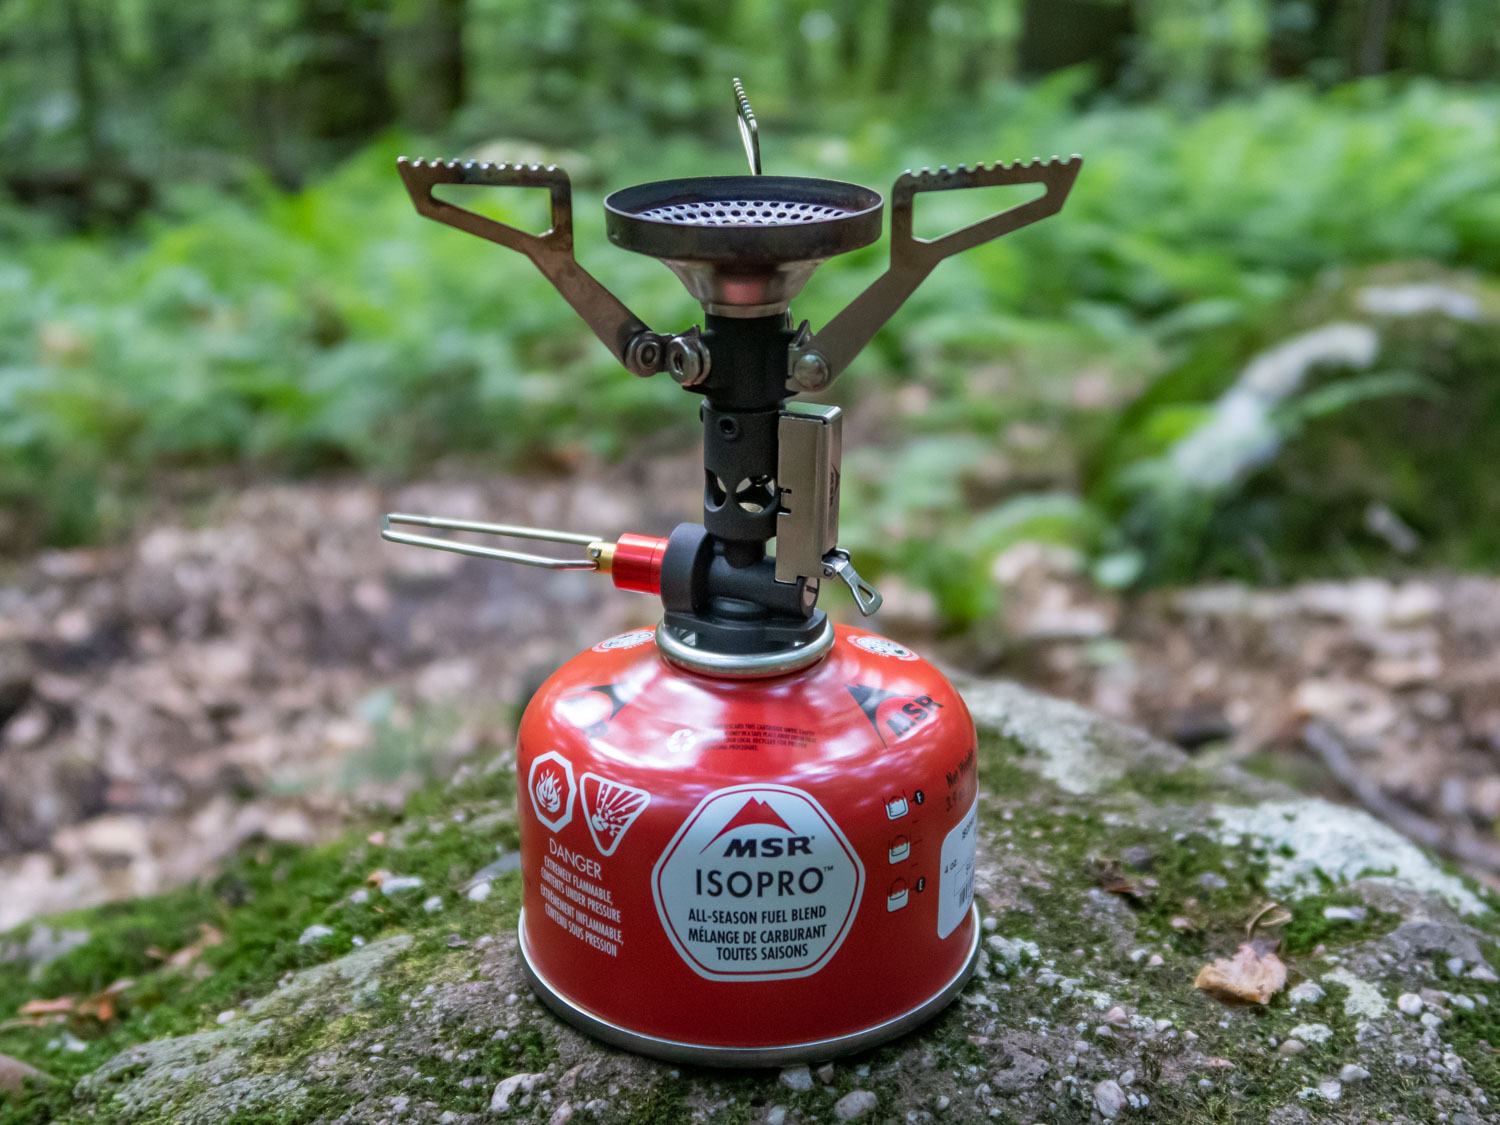 Pocket Rocket Stove >> Msr Pocketrocket Deluxe Stove Review Into The Backcountry